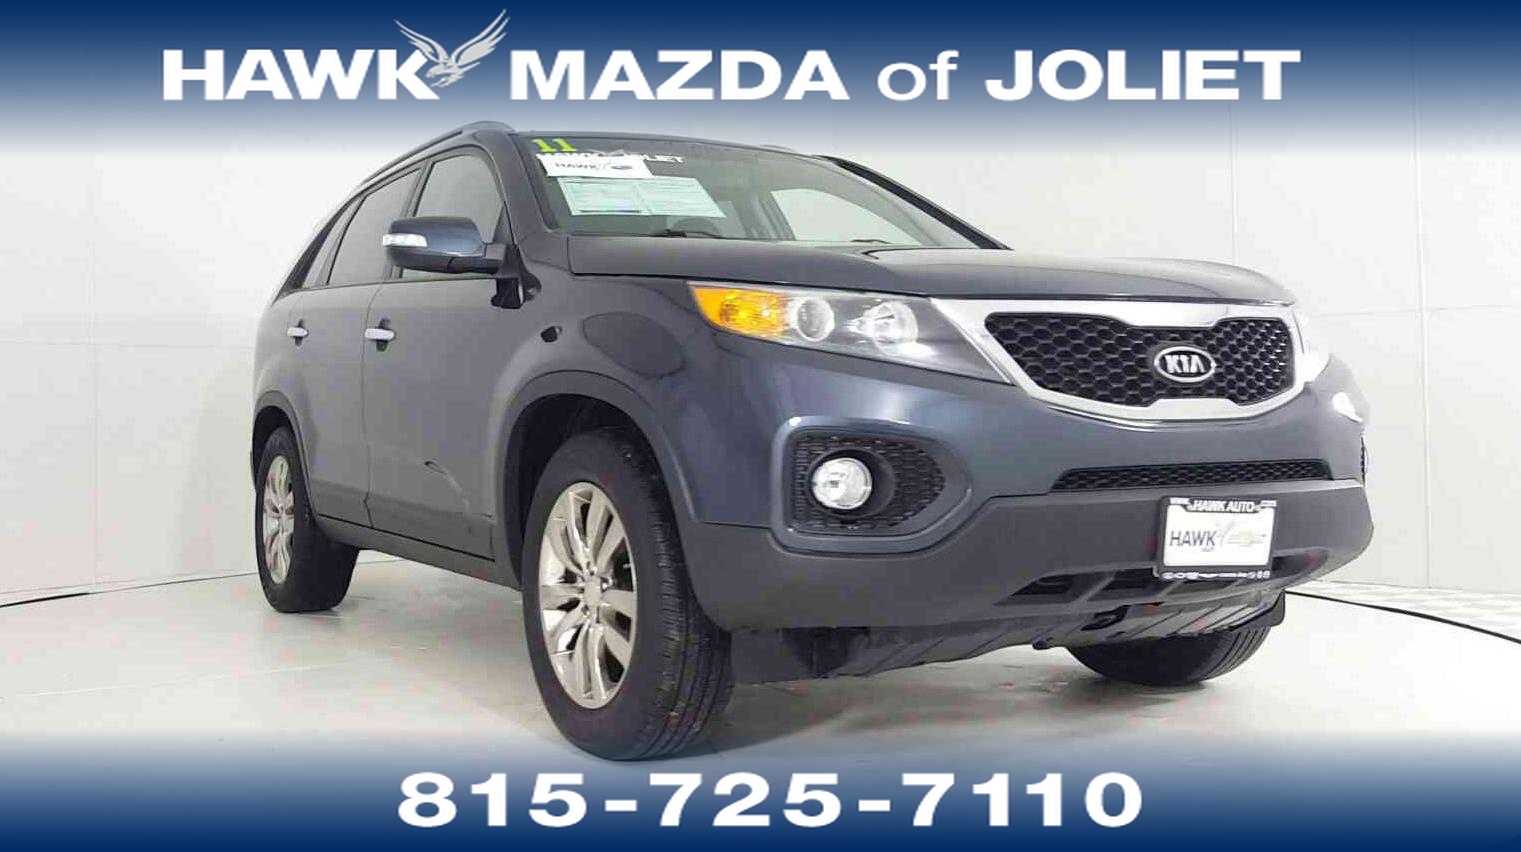 kia photo for vehicles vehicle sp turntable sale joliet crop vehiclesearchresults in optima used il